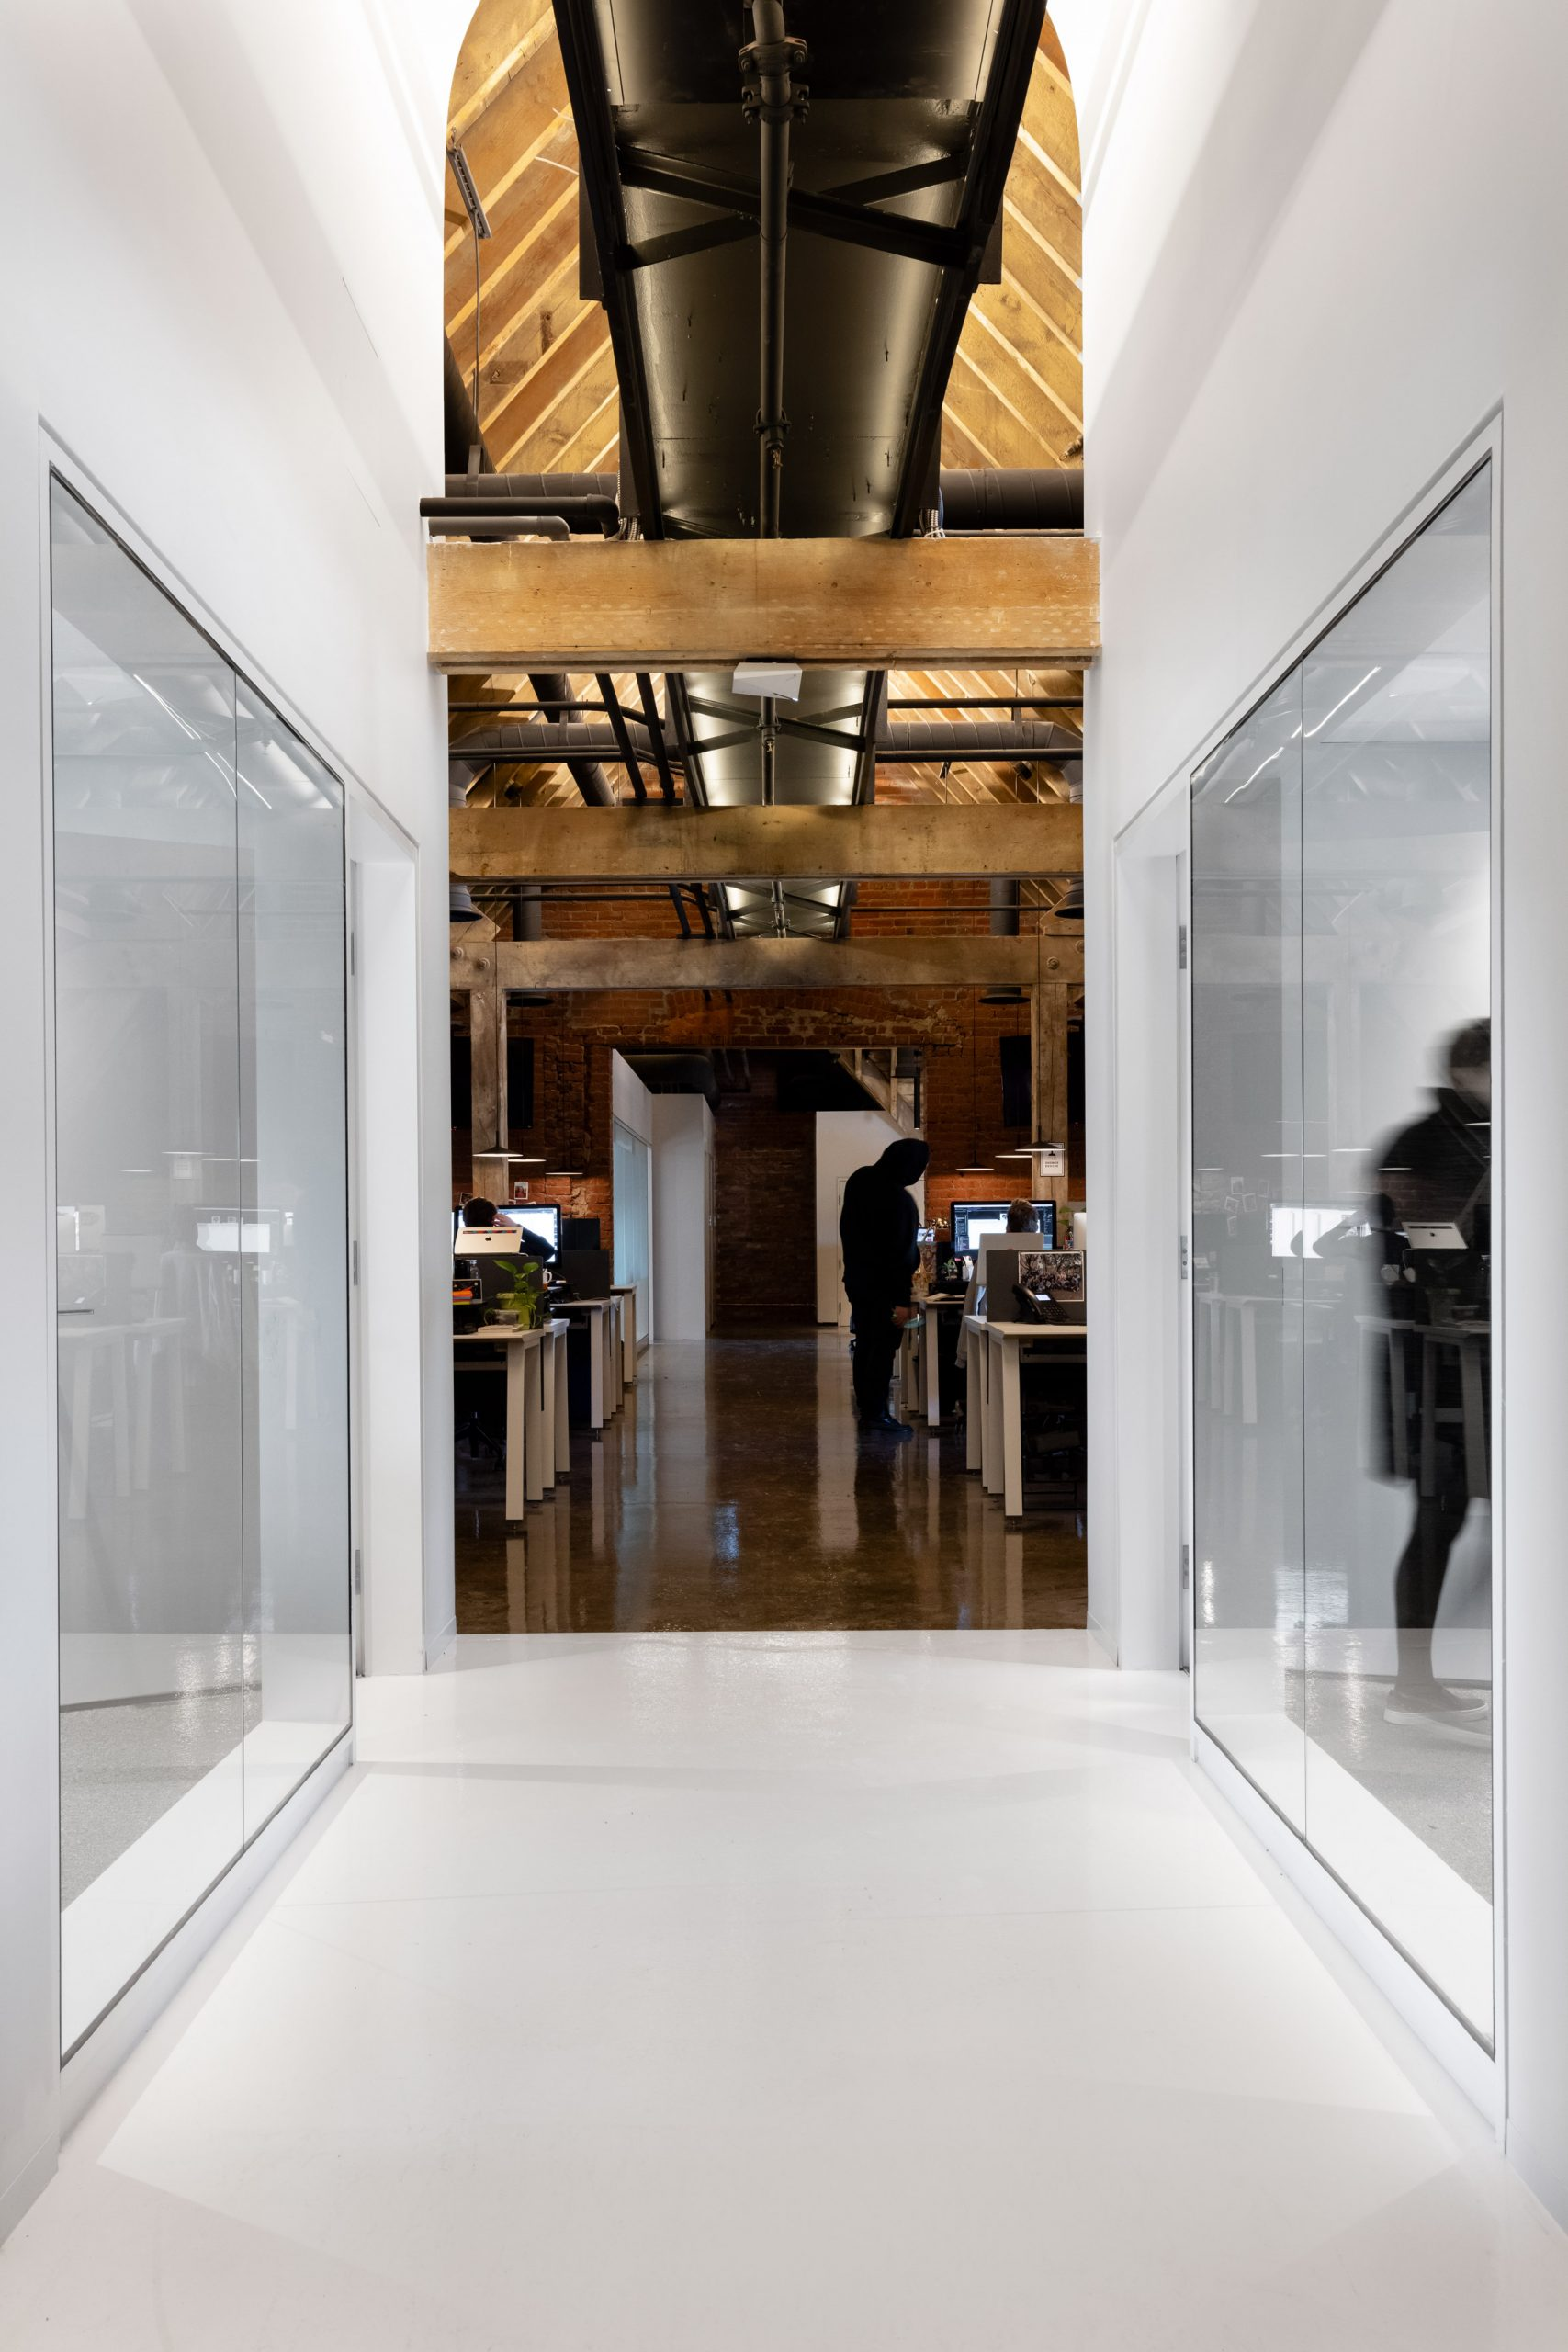 Wooden beams shown in the offices' ceilings